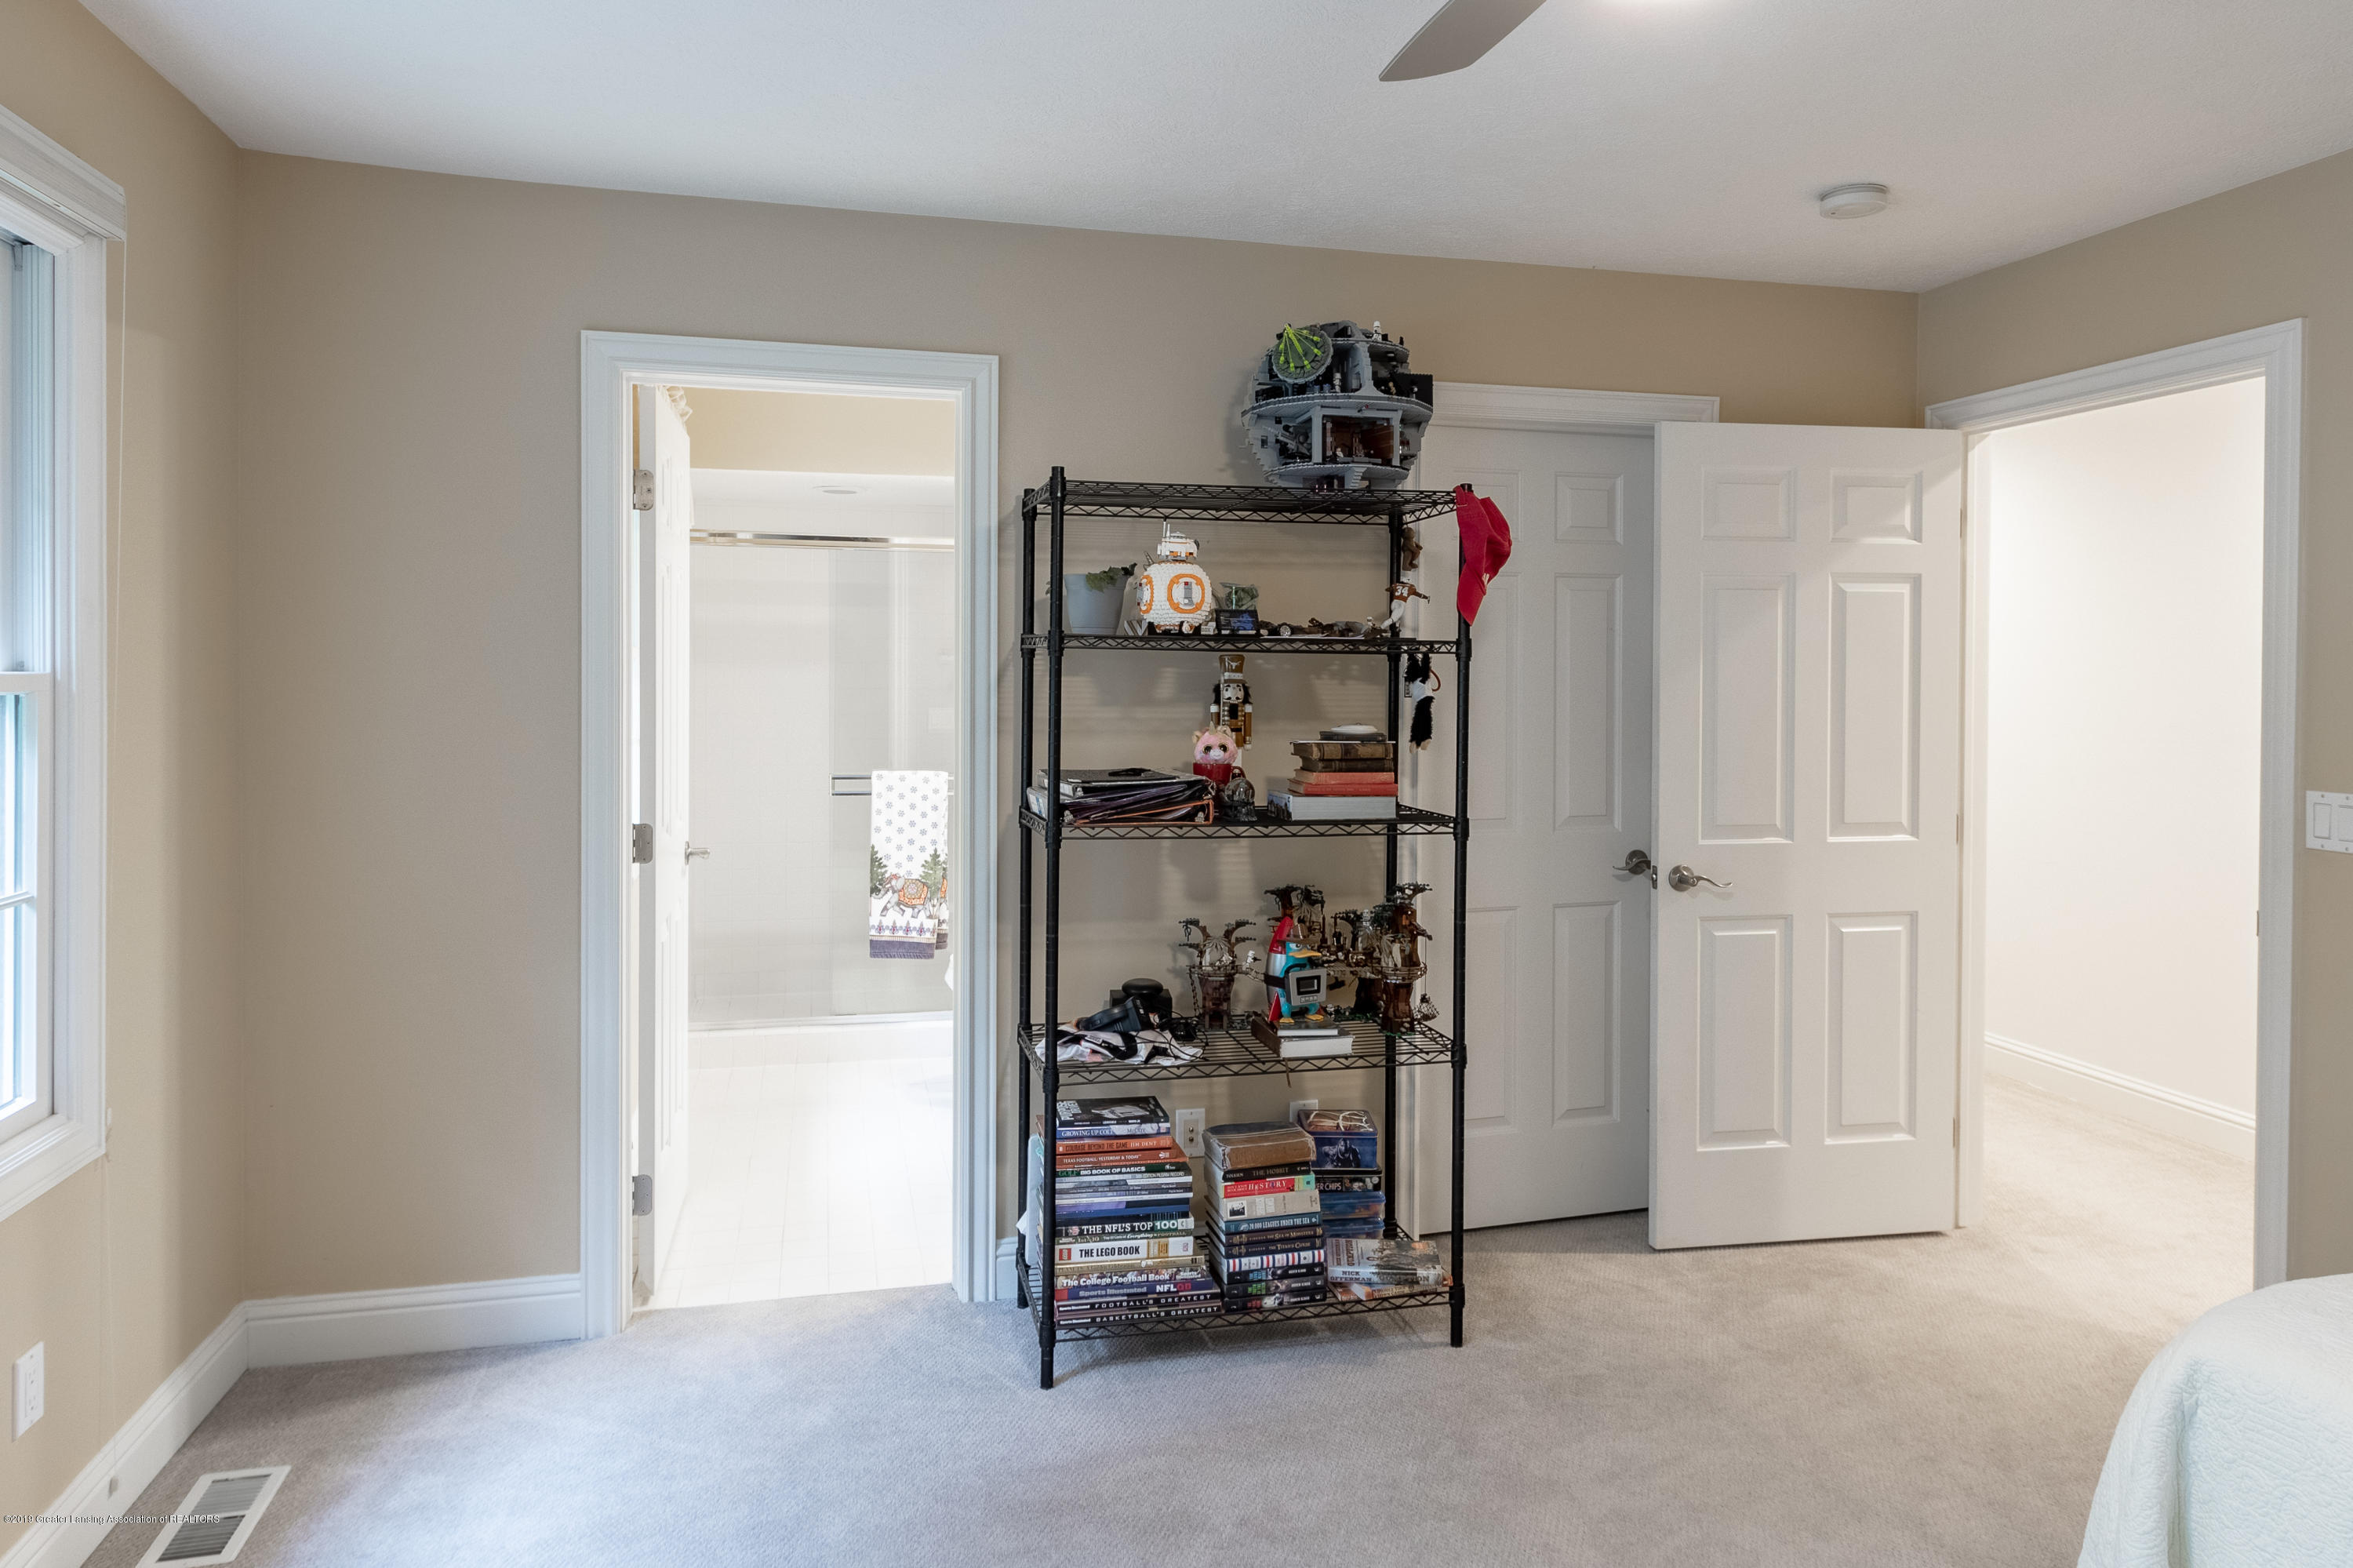 3700 Beech Tree Ln - BEDROOM 2 - 48